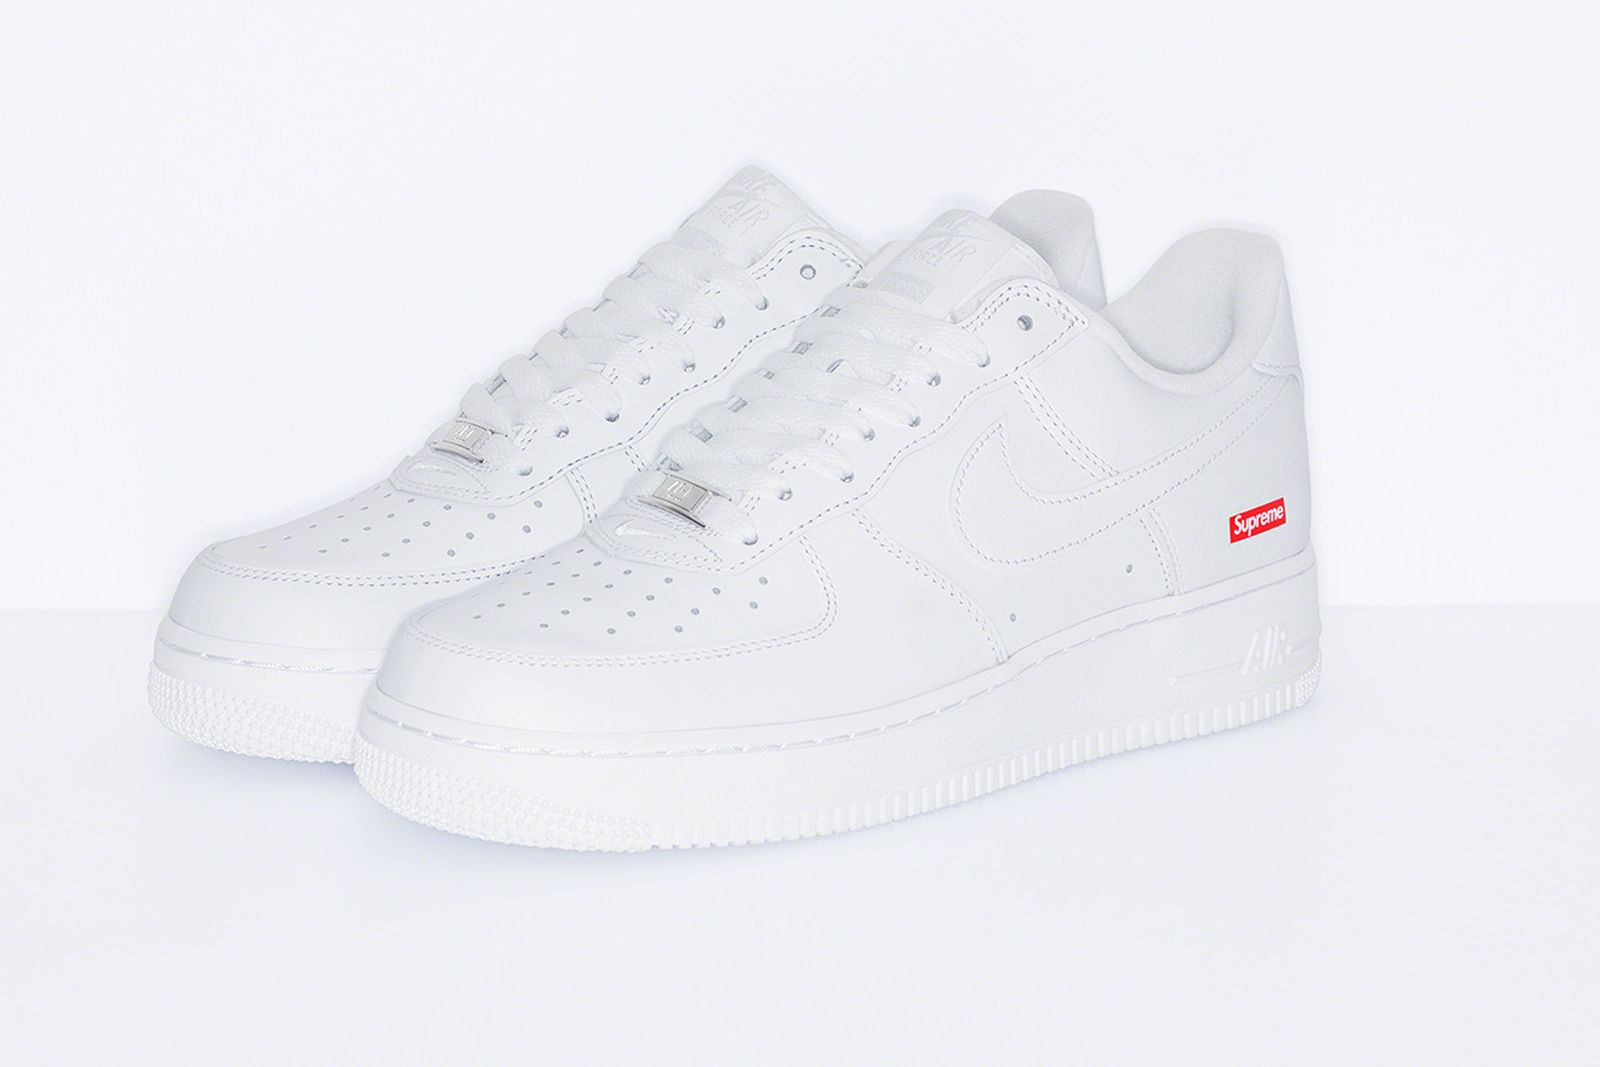 supreme-nike-air-force-1-low-2020-release-date-price-05